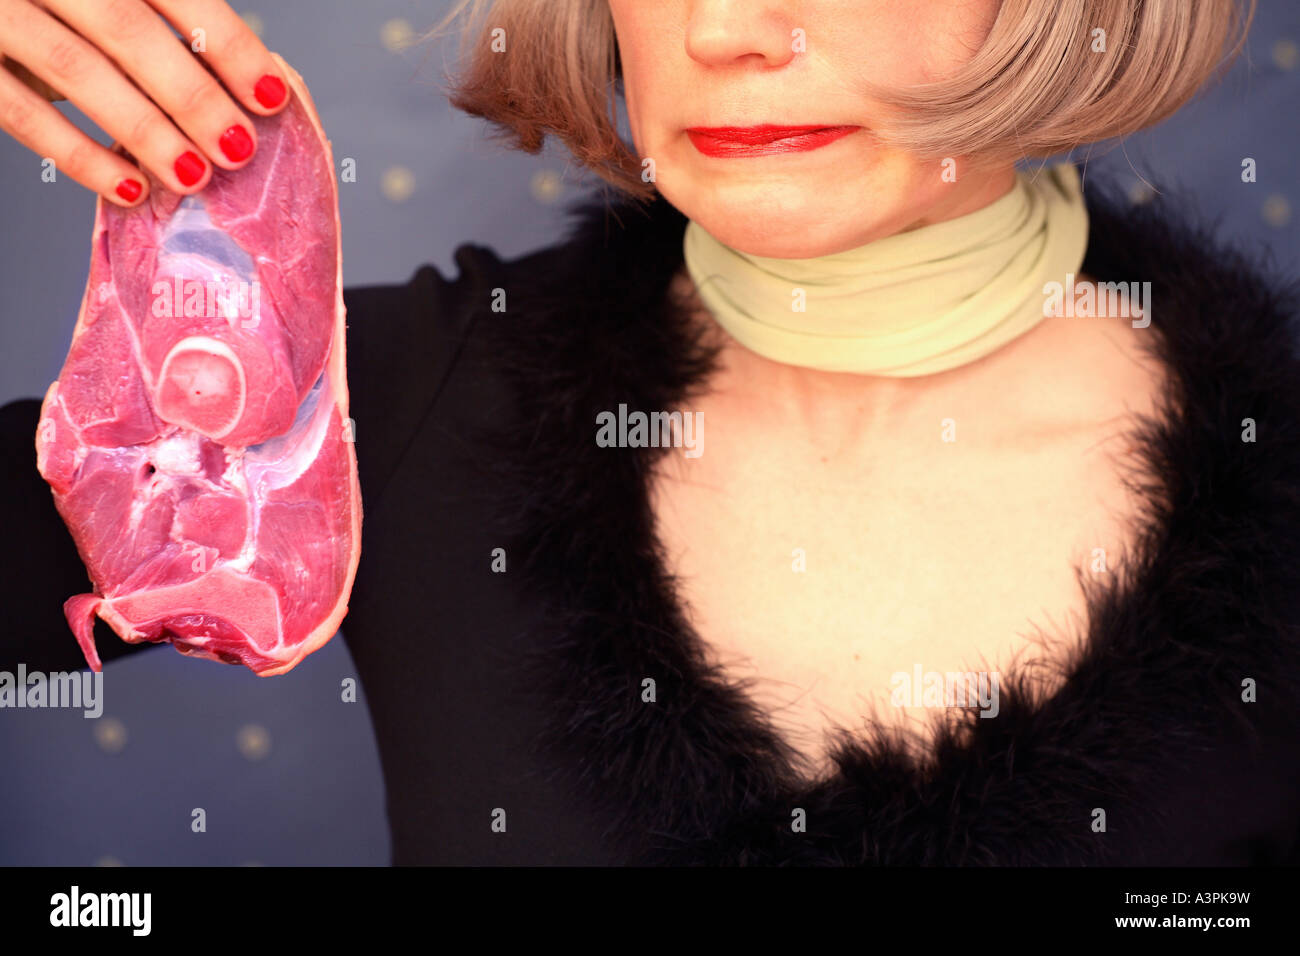 Woman holding a slice of raw meat with a look of disgust on her face - Stock Image